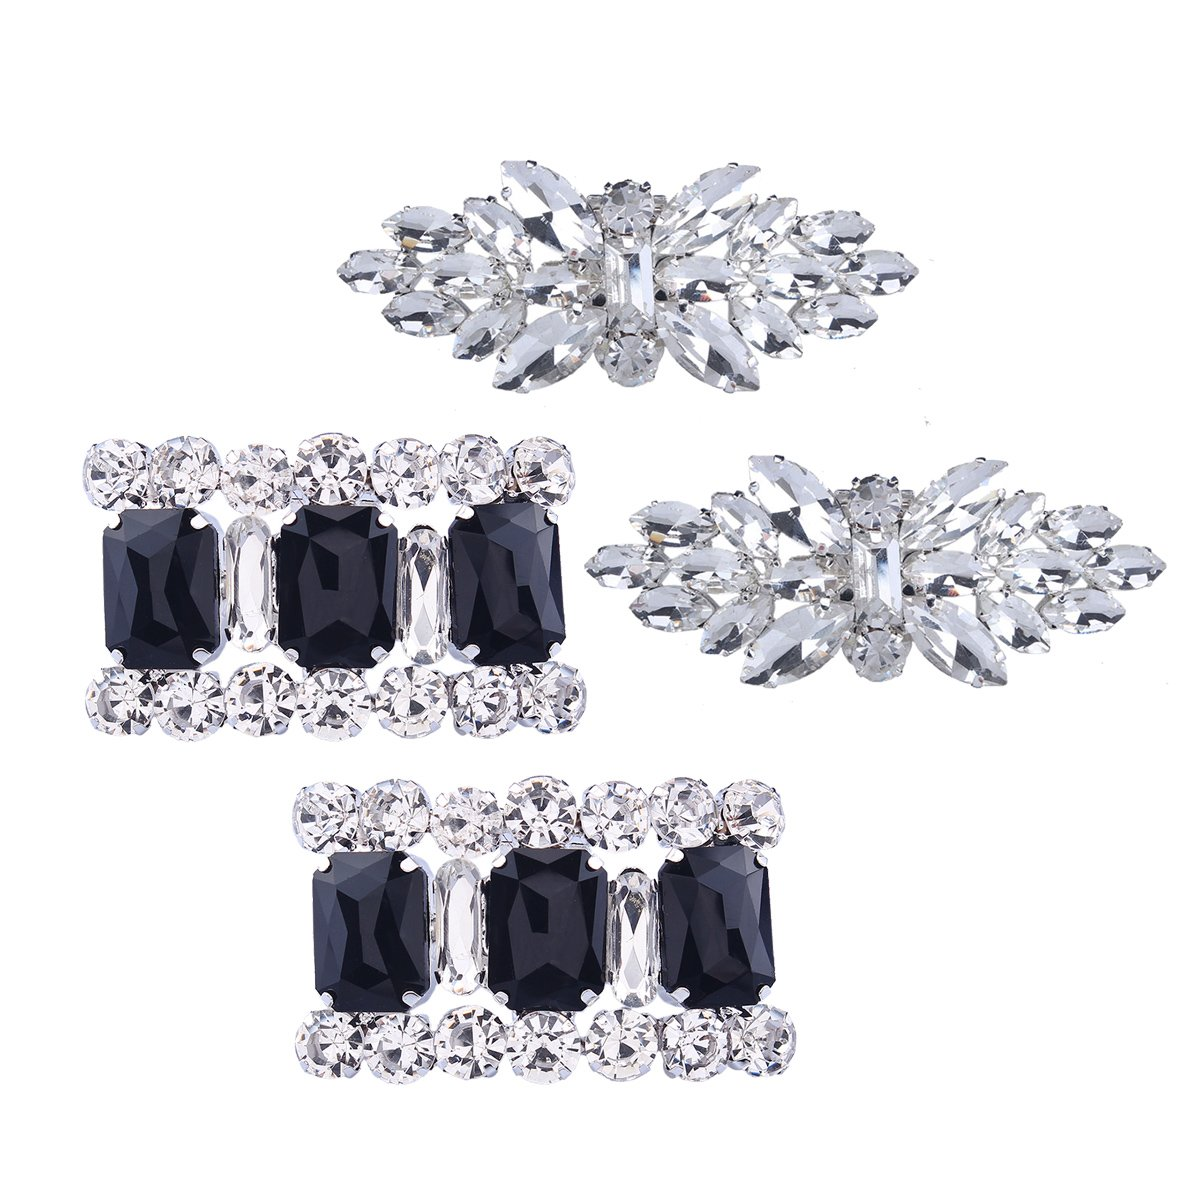 Santfe 2 Pair Rhinestone Crystal Shoe Decoration Fashion Wedding Prom Evening Party Shoe Clips Buckle (Style 12)